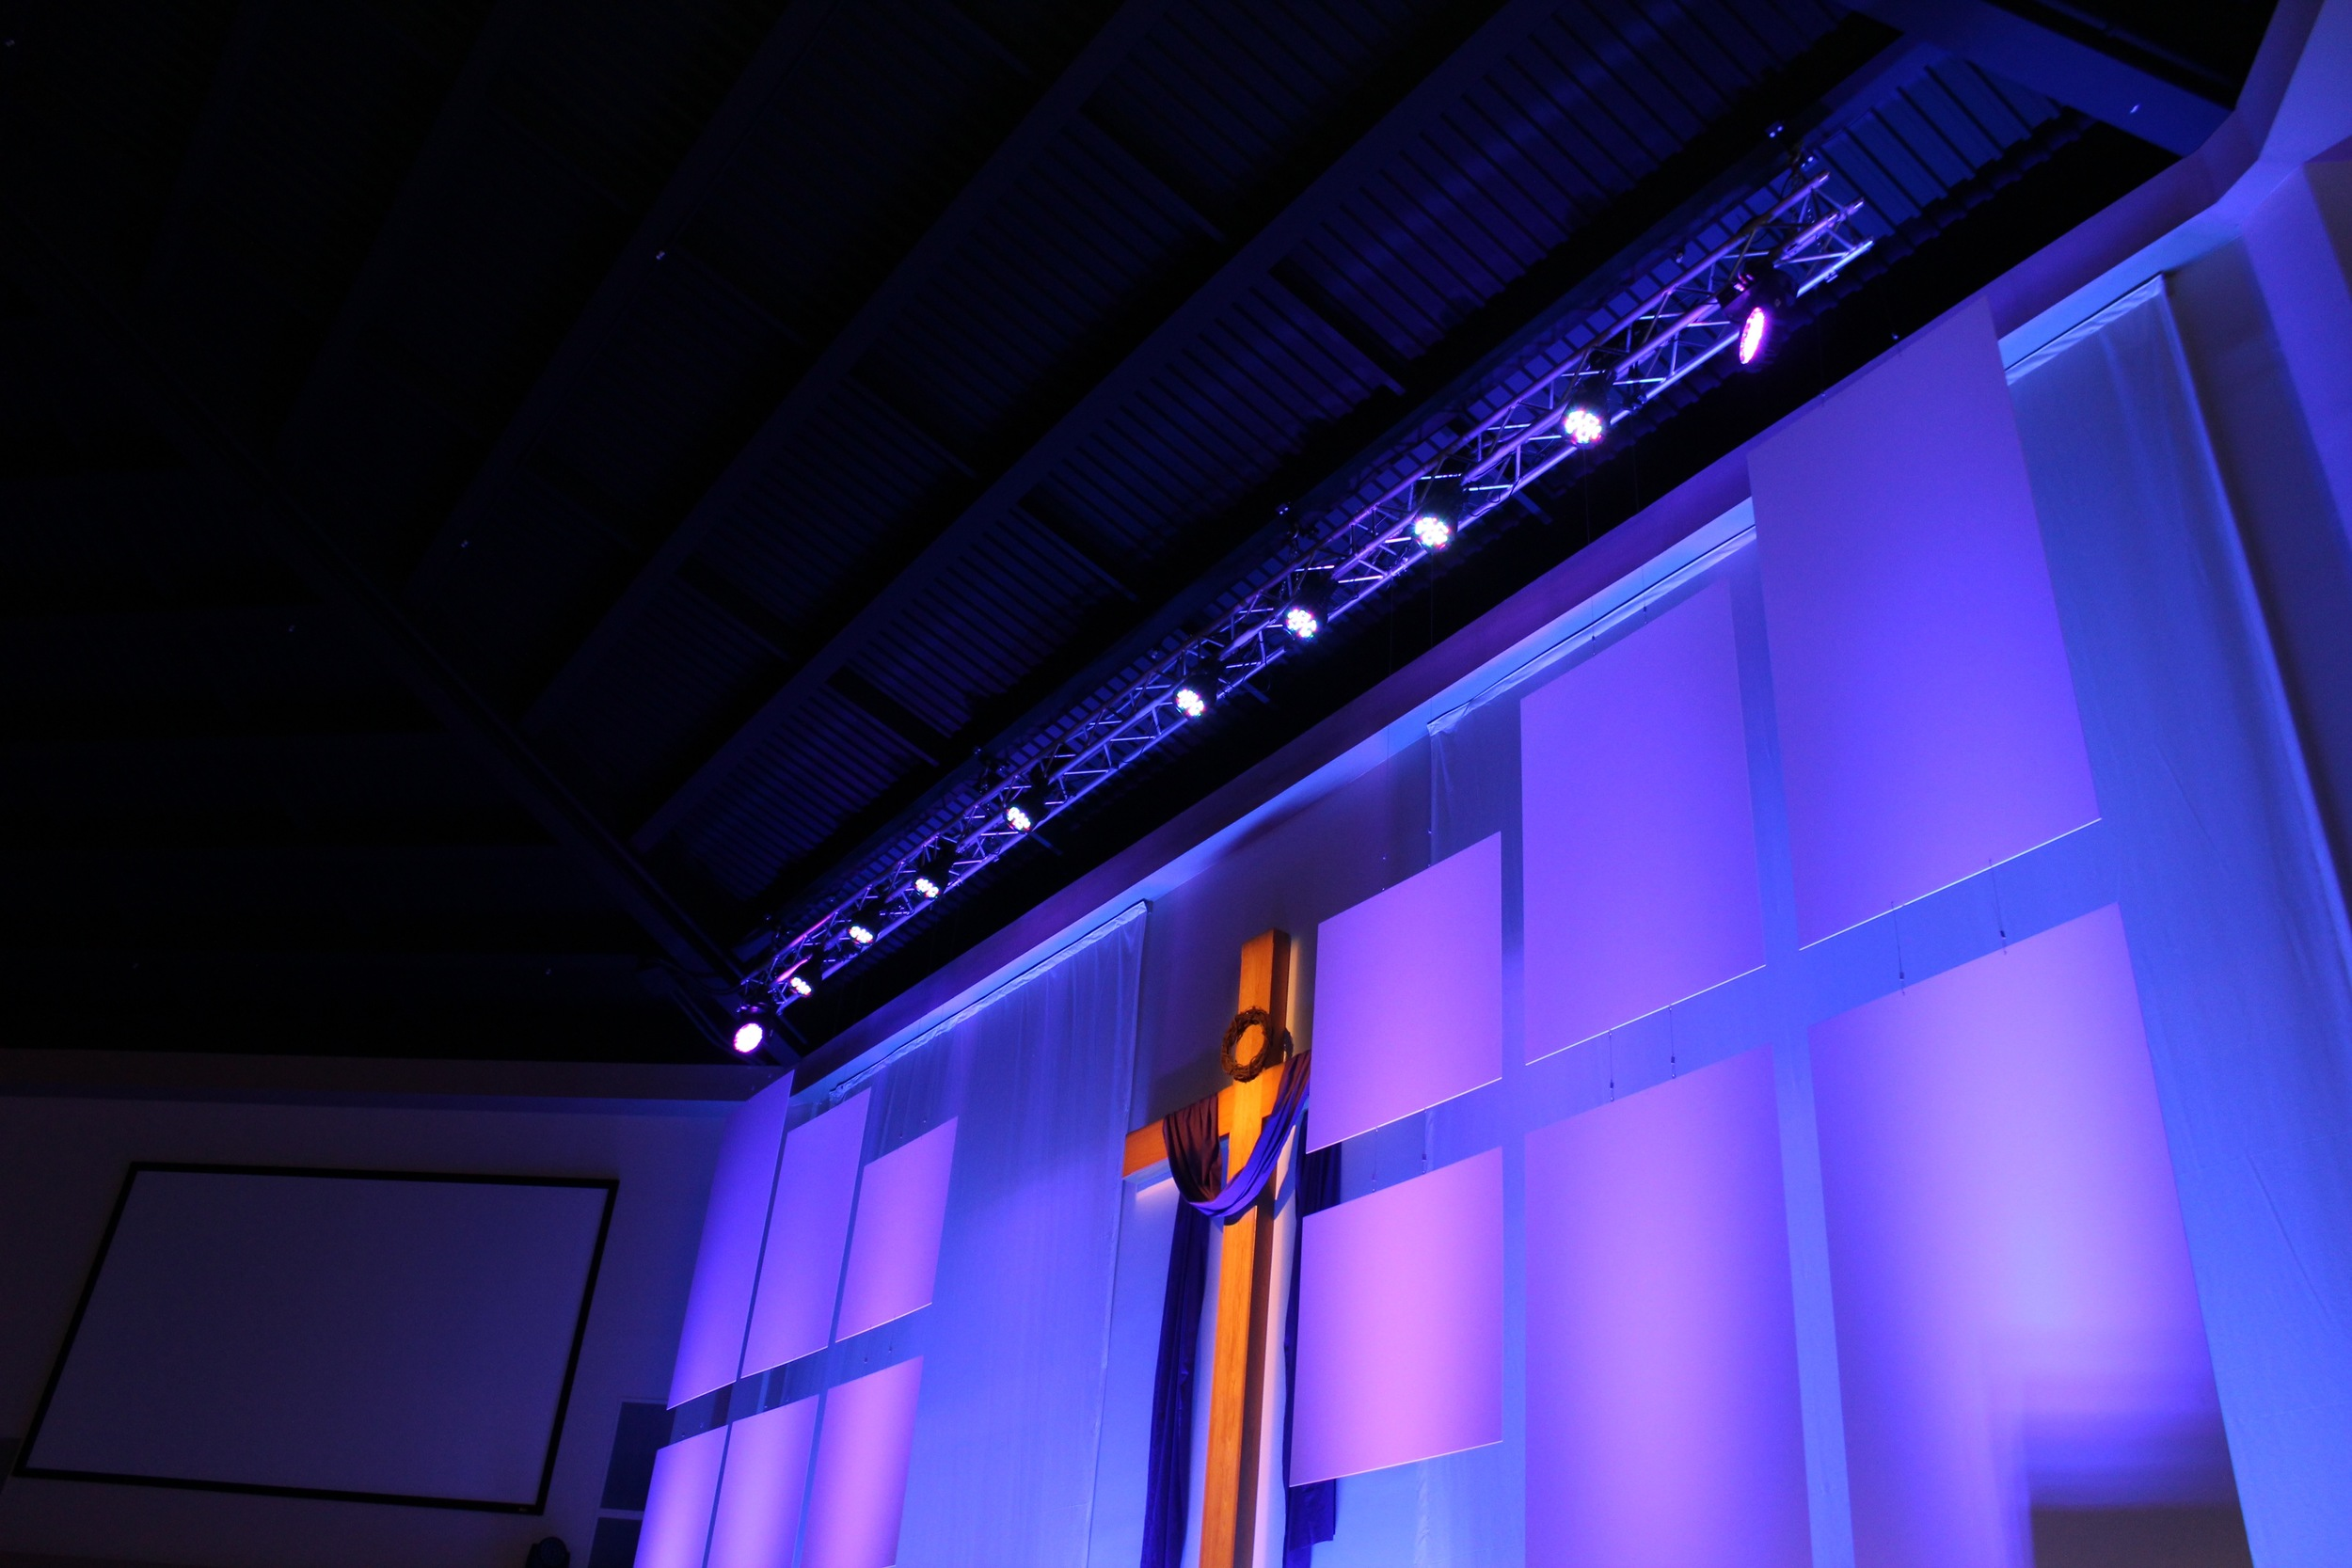 Chesapeake_Christian_Fellowship_Church_29.jpg